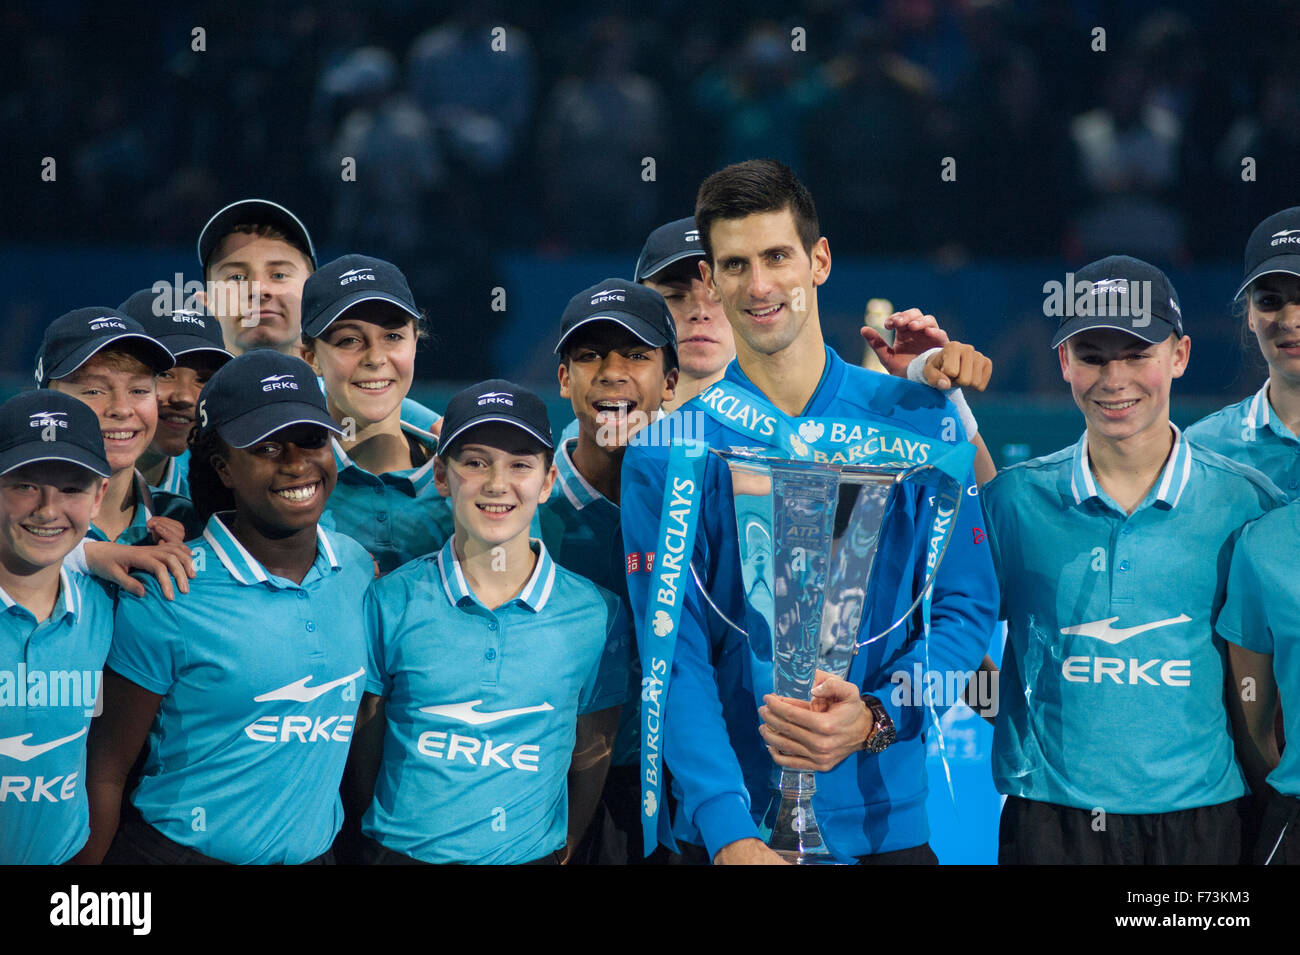 Barclays ATP World Tour Finals 2015. Singles winner Novak Djokovic on court with the Trophy surrounded by Barclays - Stock Image